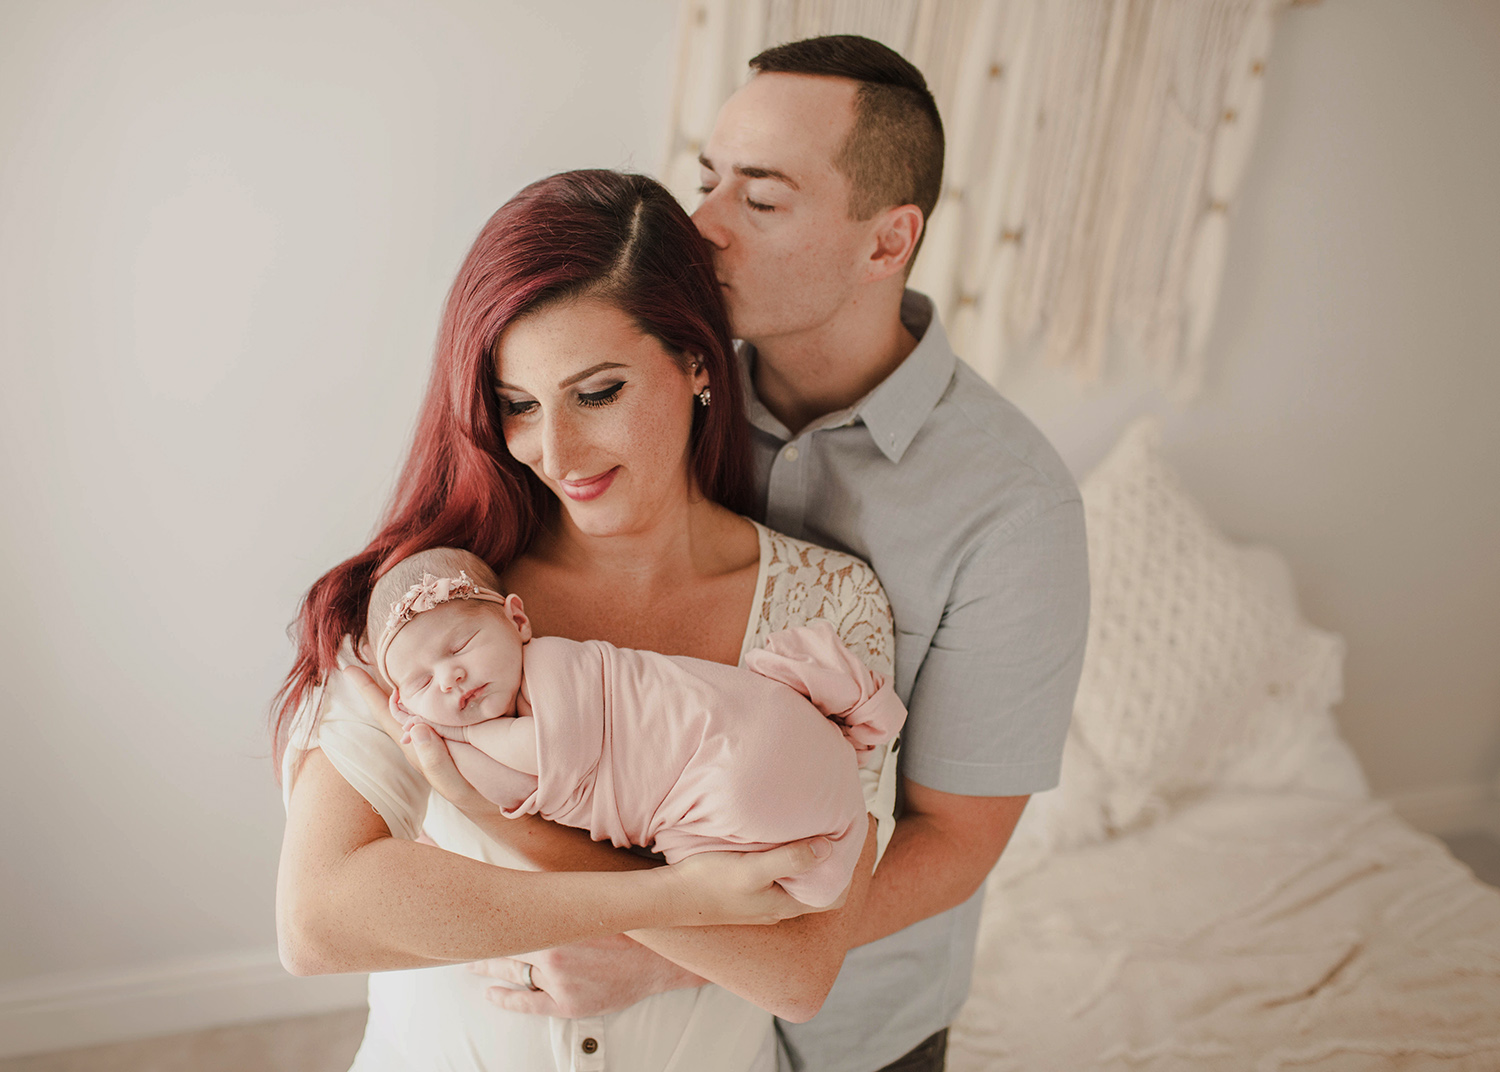 Chelsey-Hill-newborn-photography-breakout-10